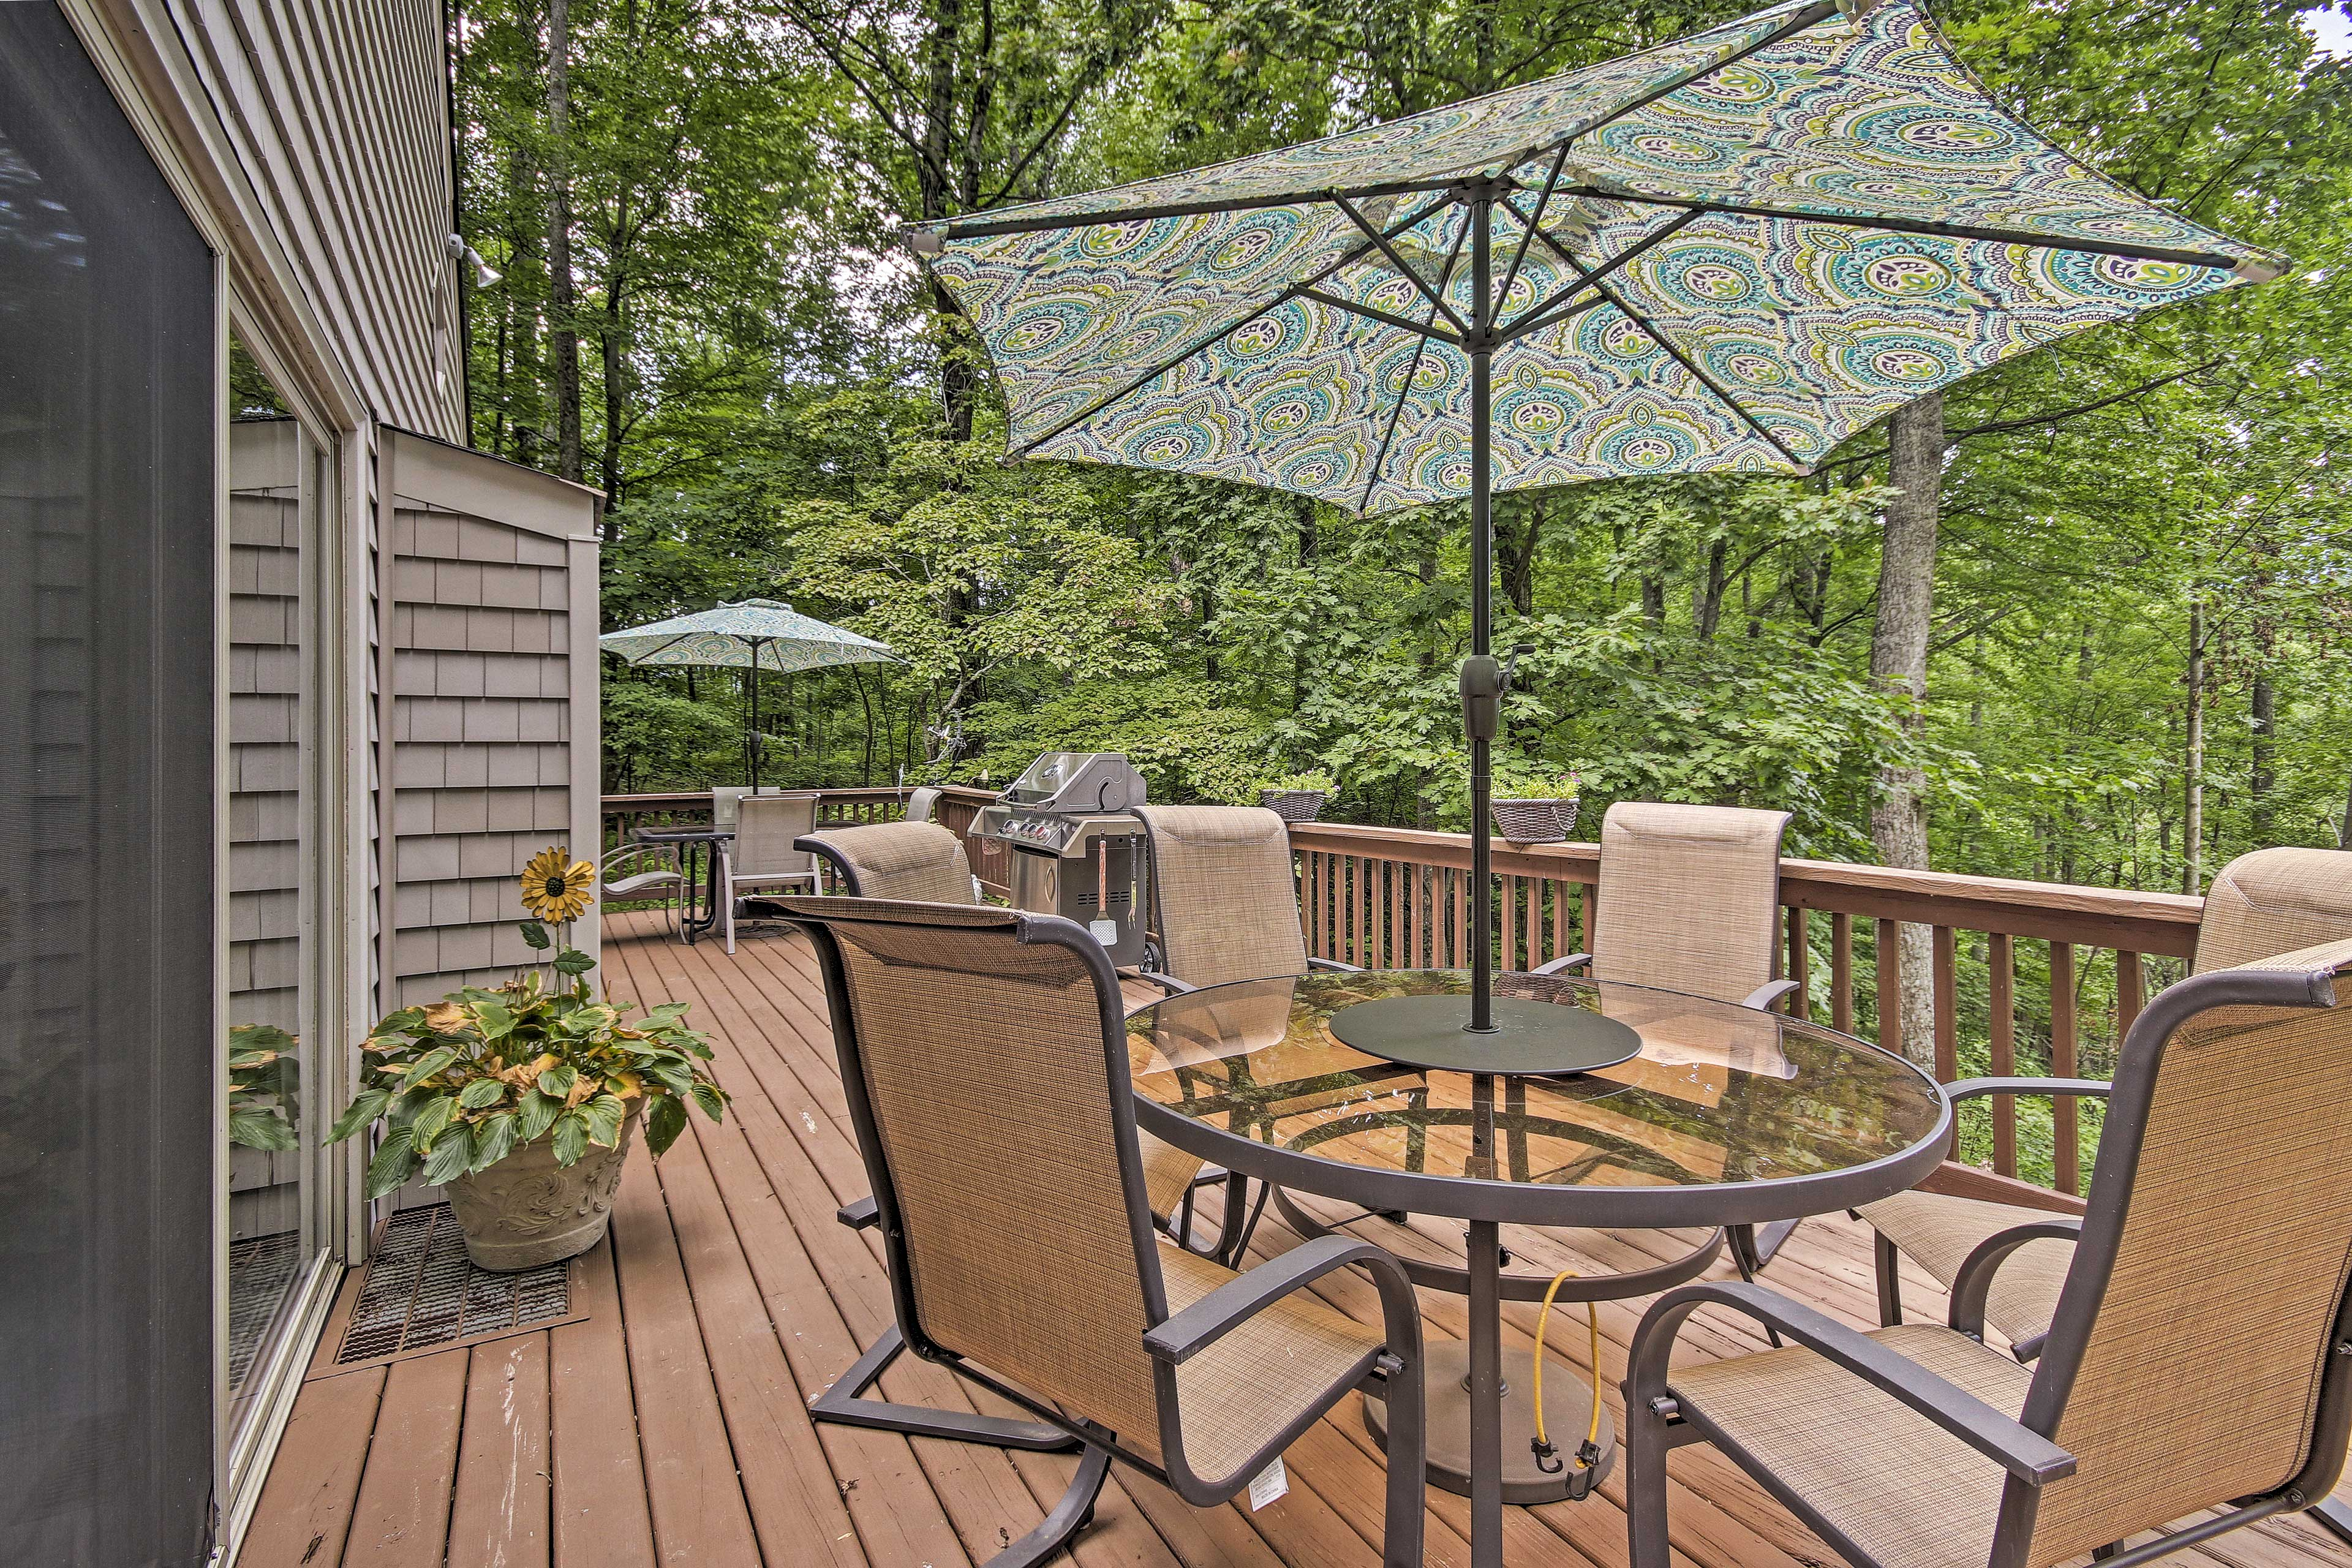 Soak up the Virginia sun on the expansive back deck.